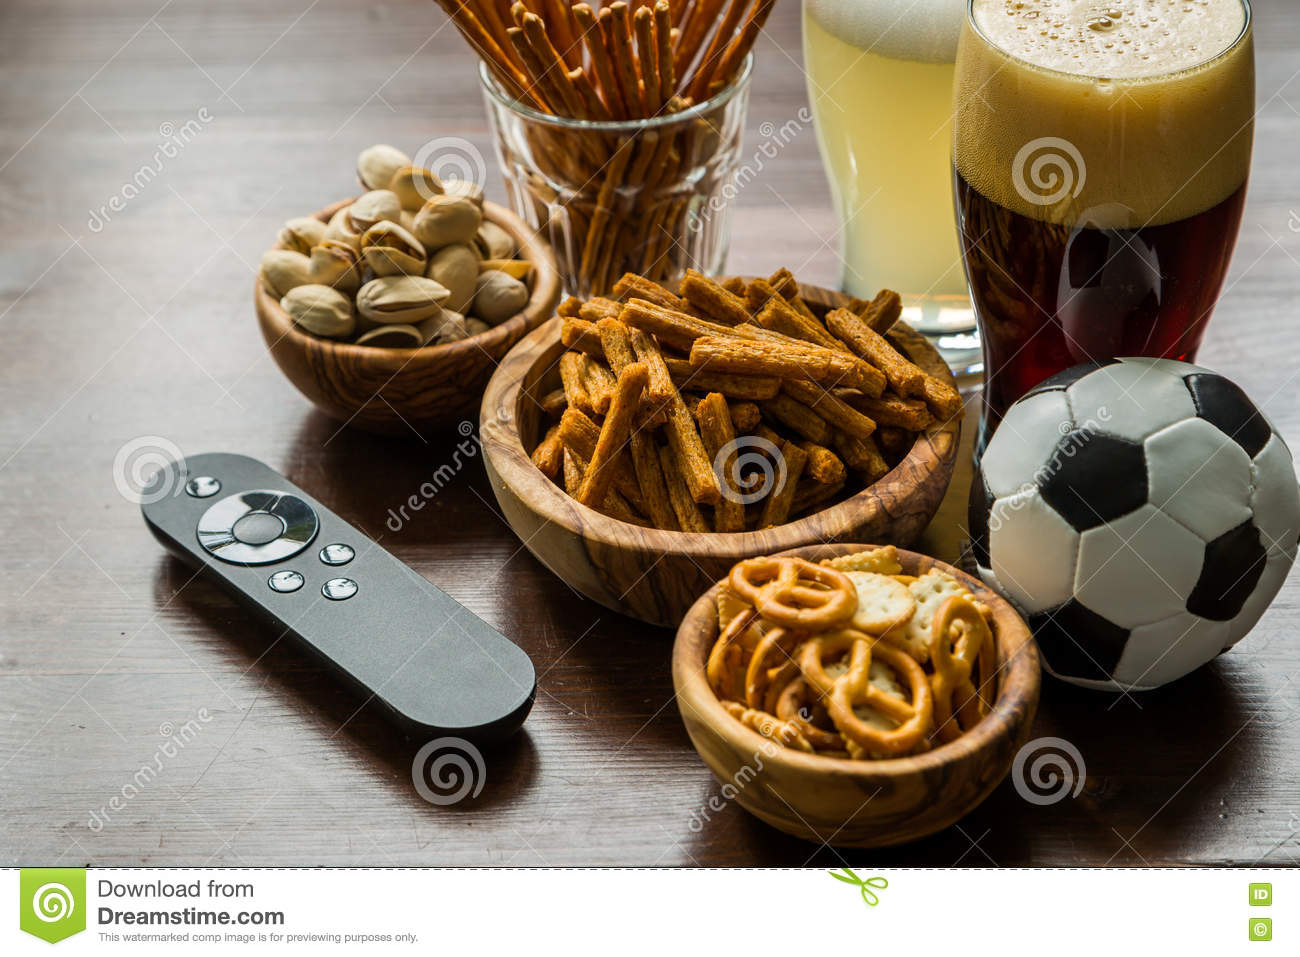 Food for Watching Football